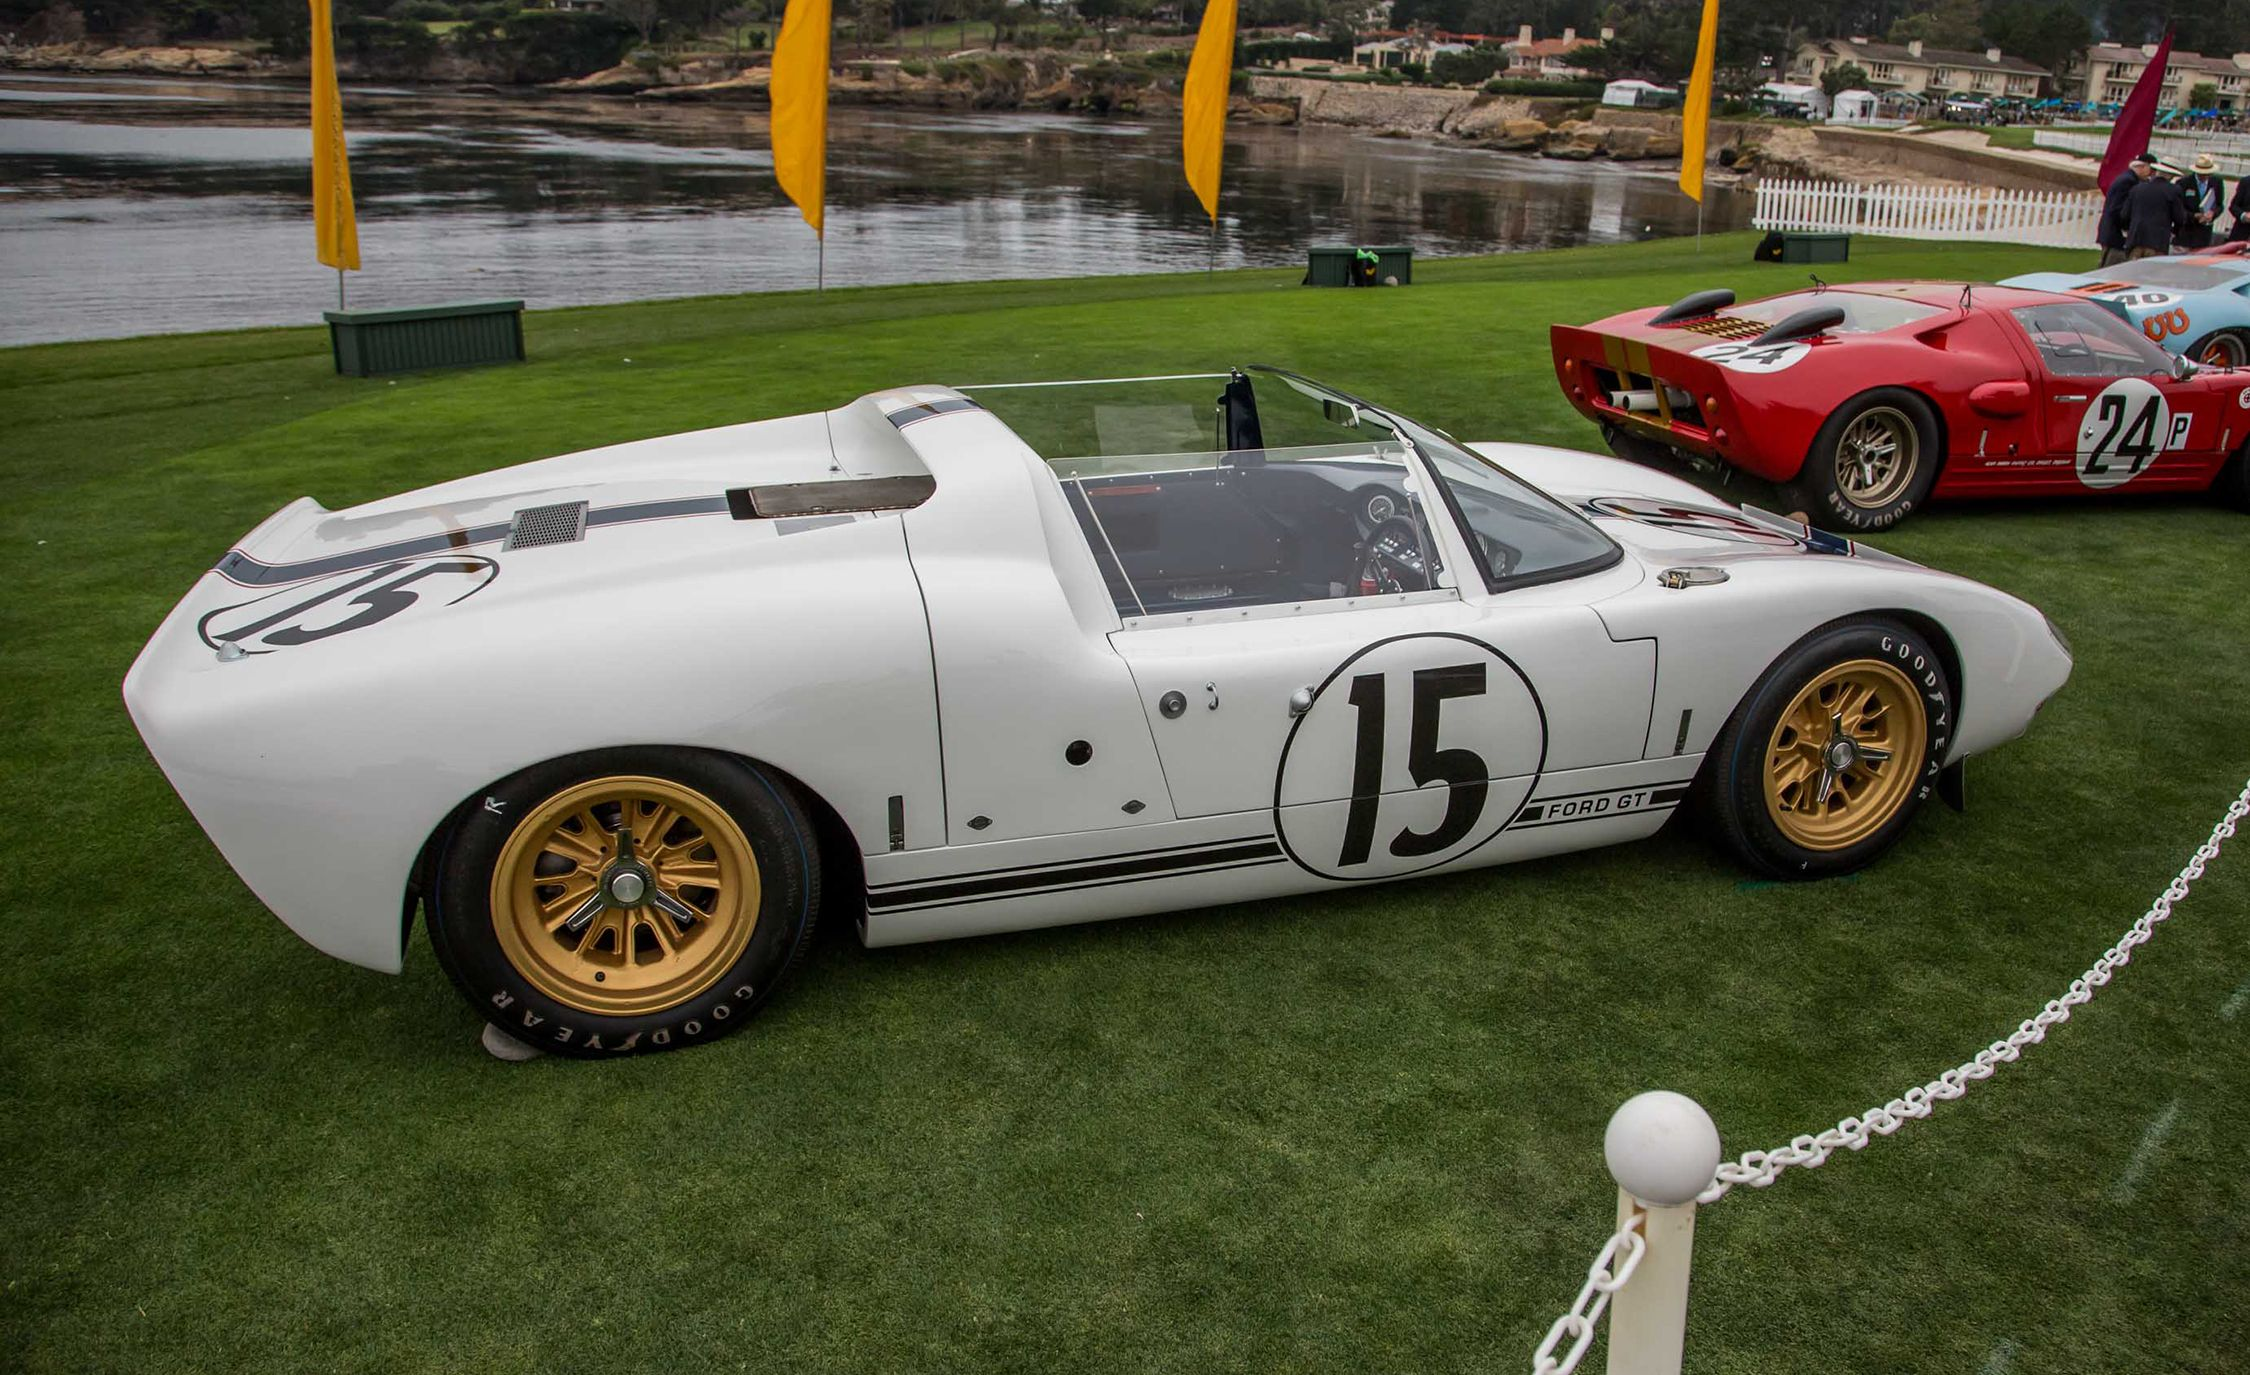 Vintage Ford Gts Stampede Into Pebble Beach We Dive Into Their Histories Flipbook Car And Driver